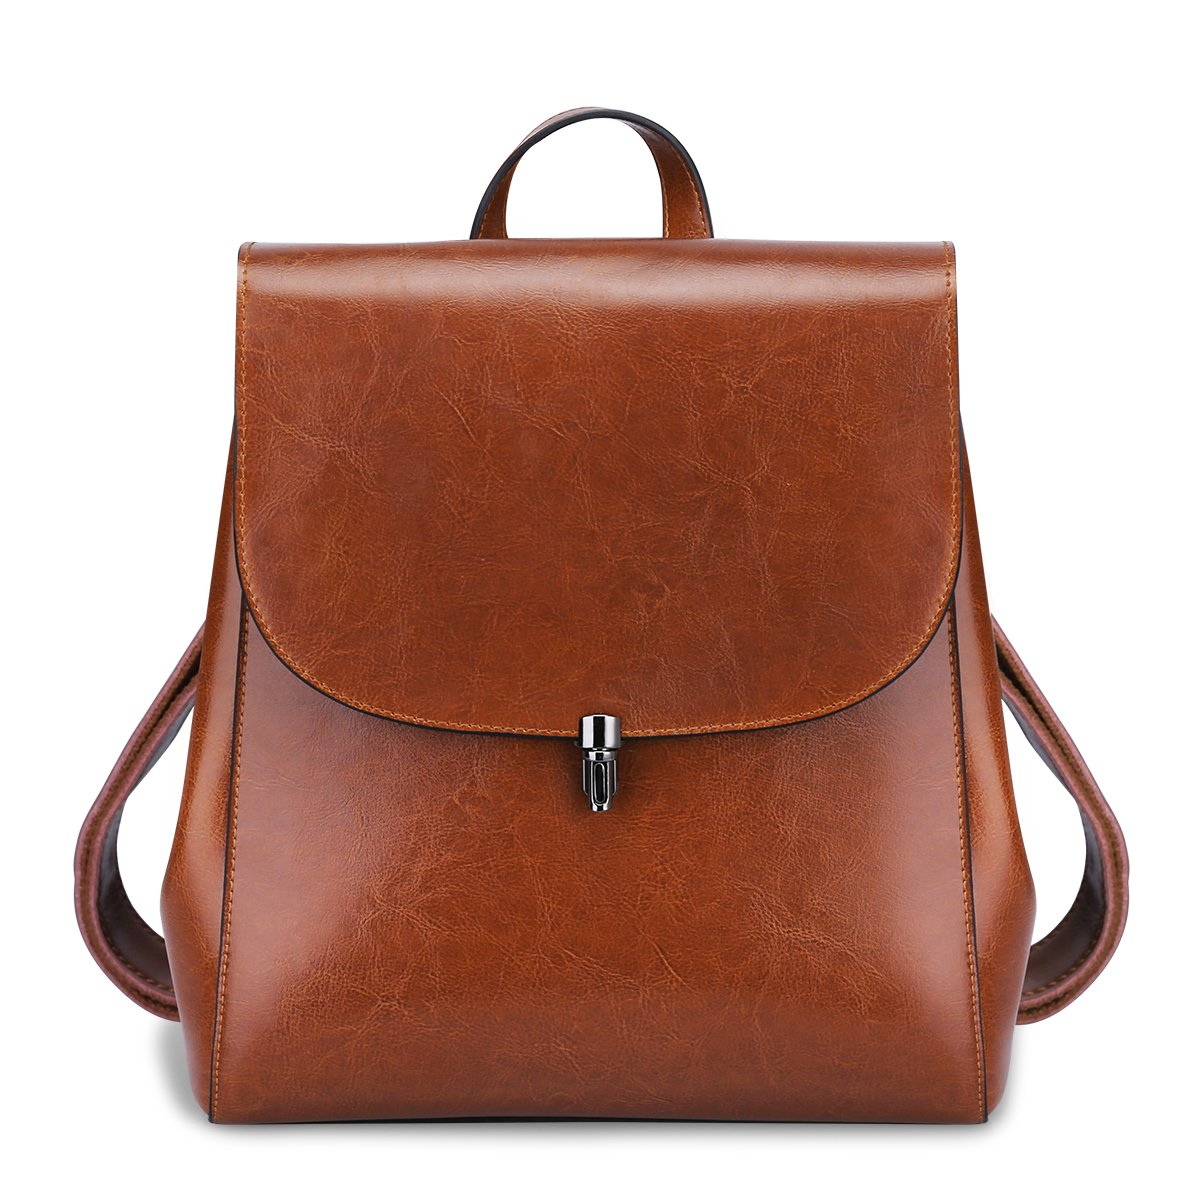 S-ZONE Women Girls Ladies Leather Backpack Purse Daily Casual Travel Bag (Brown)